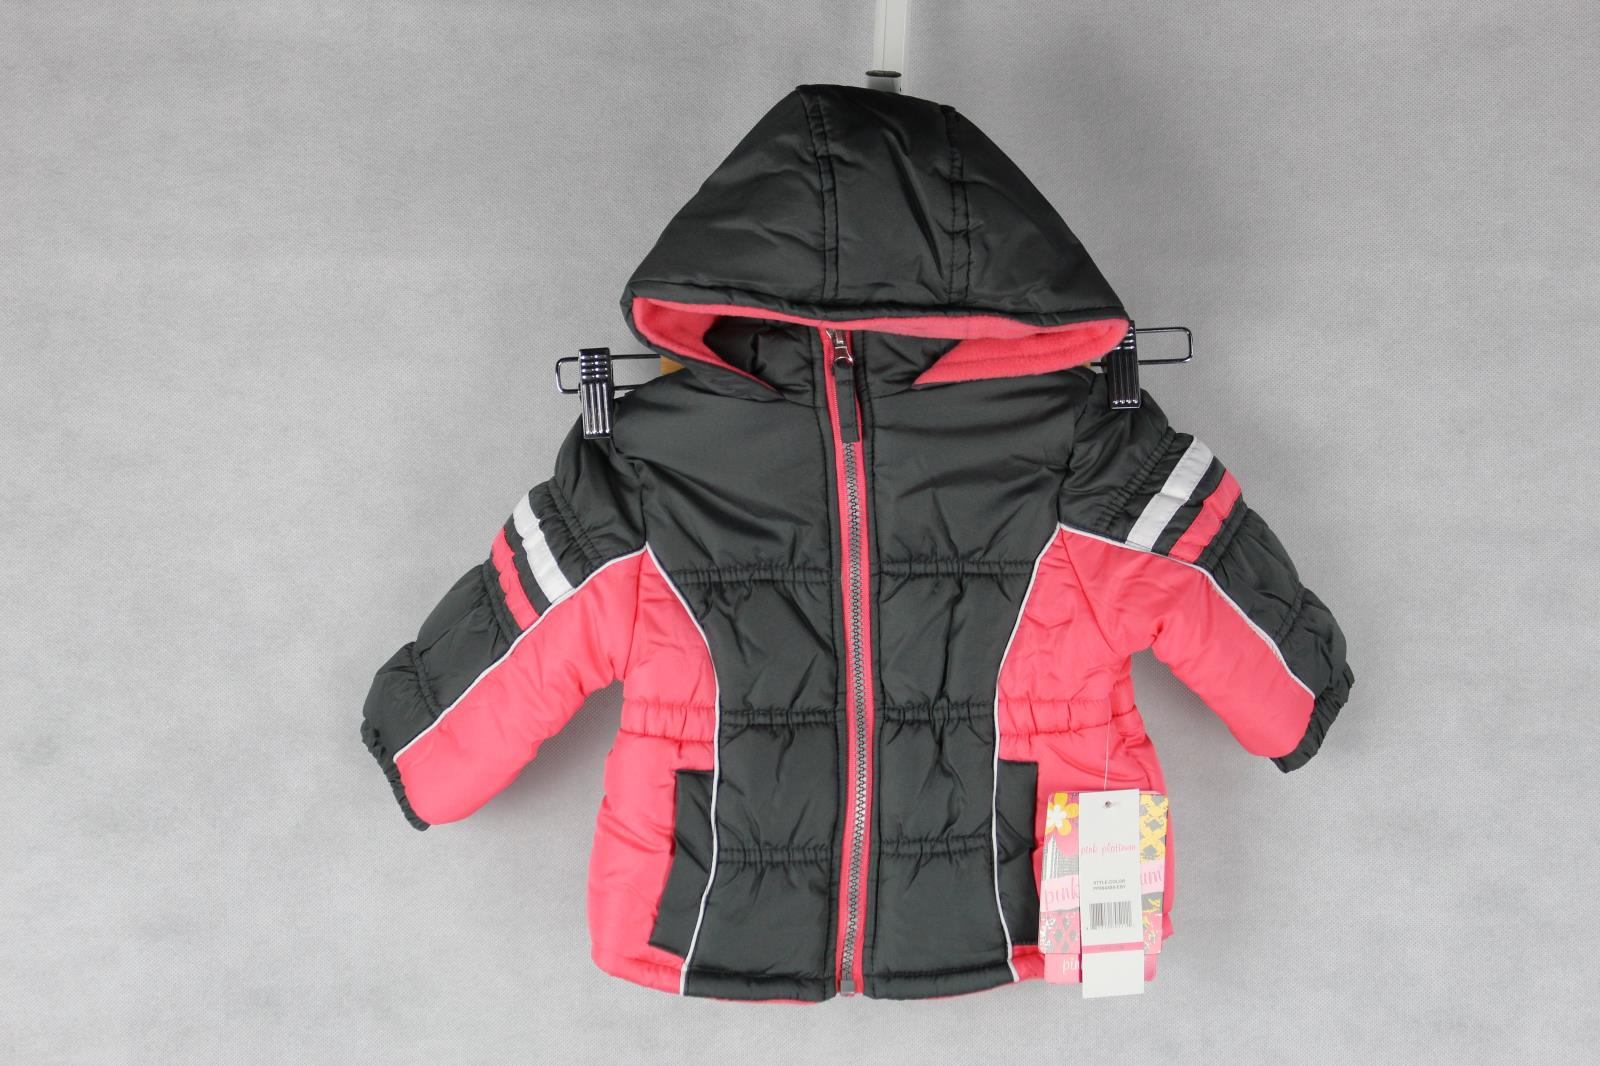 807059ba0c7 Details about Pink Platinum Girls' Colorblock Active Puffer Size 12 months